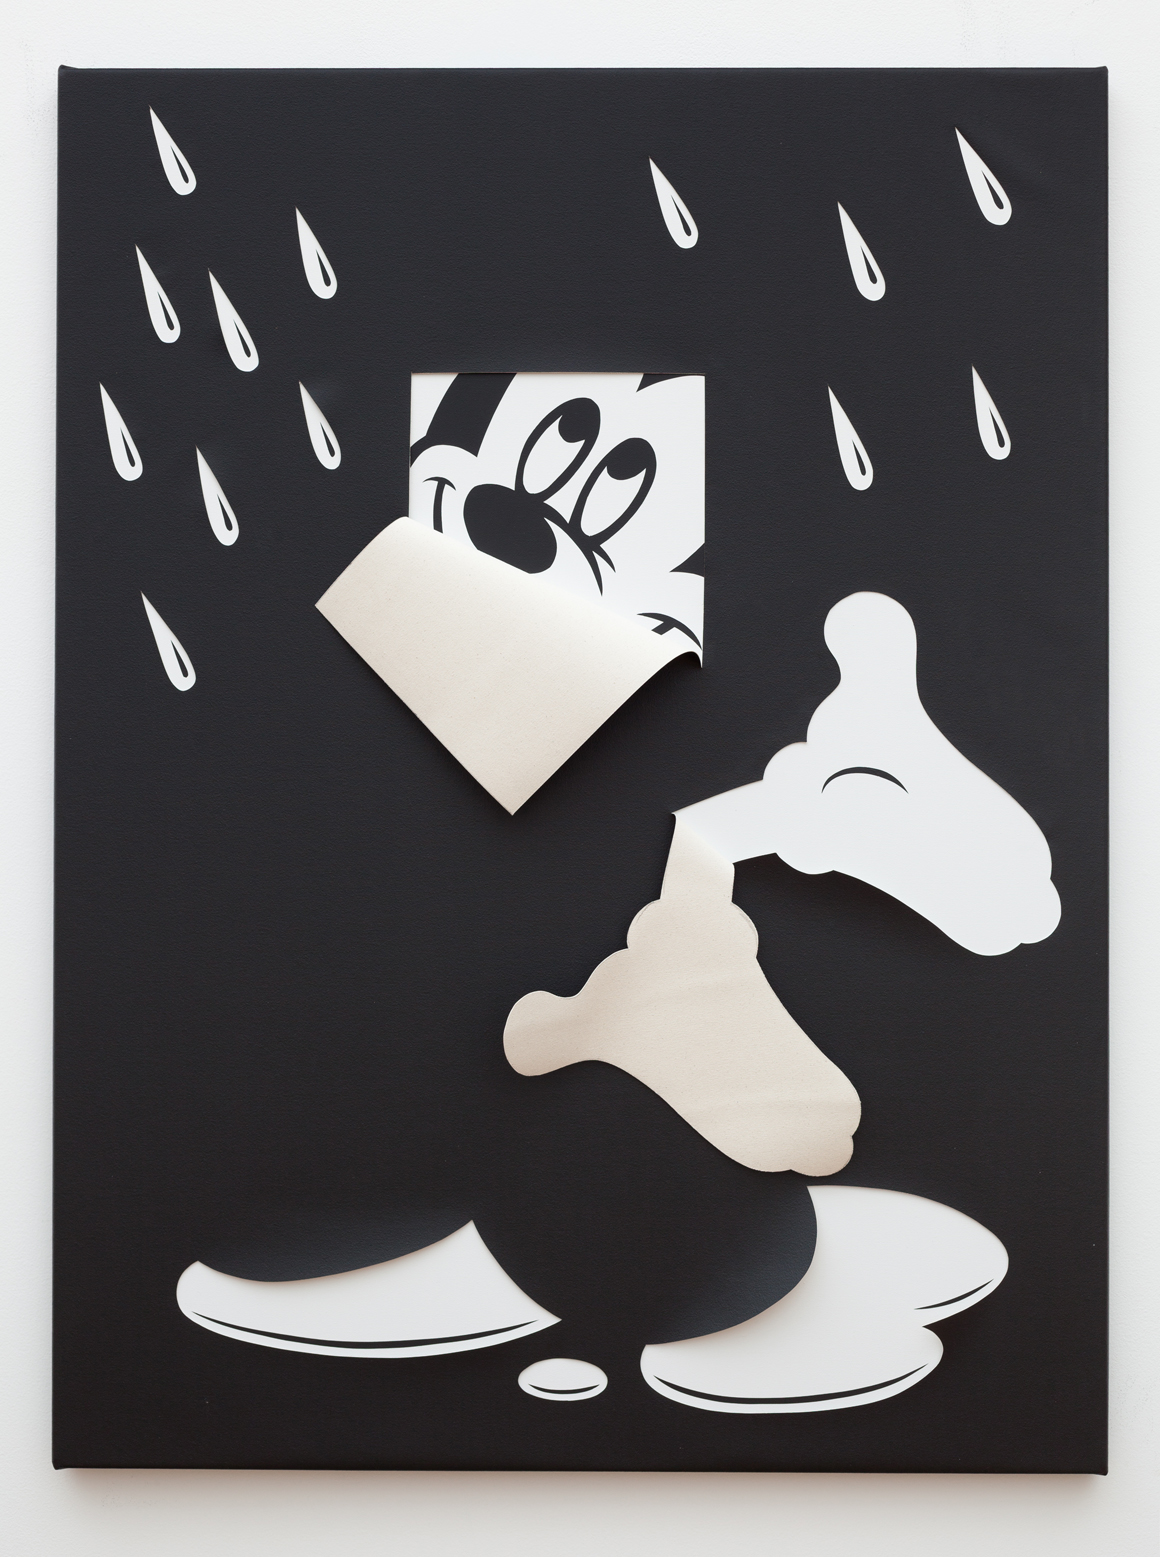 "<p><span class=""name"">Zach Reini</span><br><em>I'm Only Happy When It Rains</em><span class='media'>Latex on canvas, cut</span>48 x 36 in (121.9 x 91.4 cm)<br>2015<br><a class='inquire' href='mailto:info@gildargallery.com?subject=Artwork Inquiry ZREI0029&body=I am interested in finding out more about I'm Only Happy When It Rains by Zach Reini'>Inquire</a></p>"